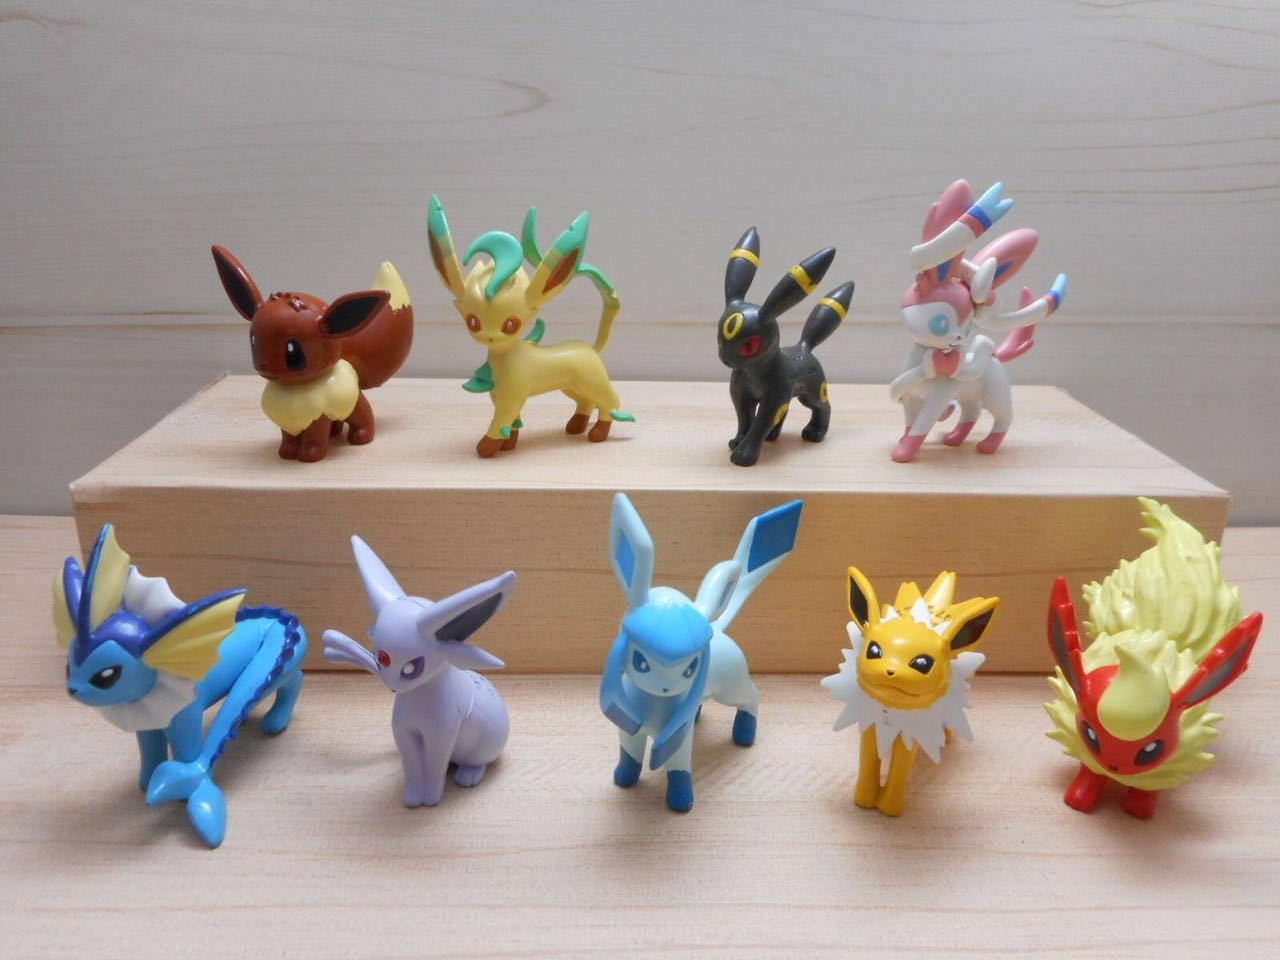 Pikachu Action Figure Toy eevee Vaporeon Jolteon Flareon Espeon Umbreon Leafeon Glaceon Sylveon Pocket Monster manga Anime